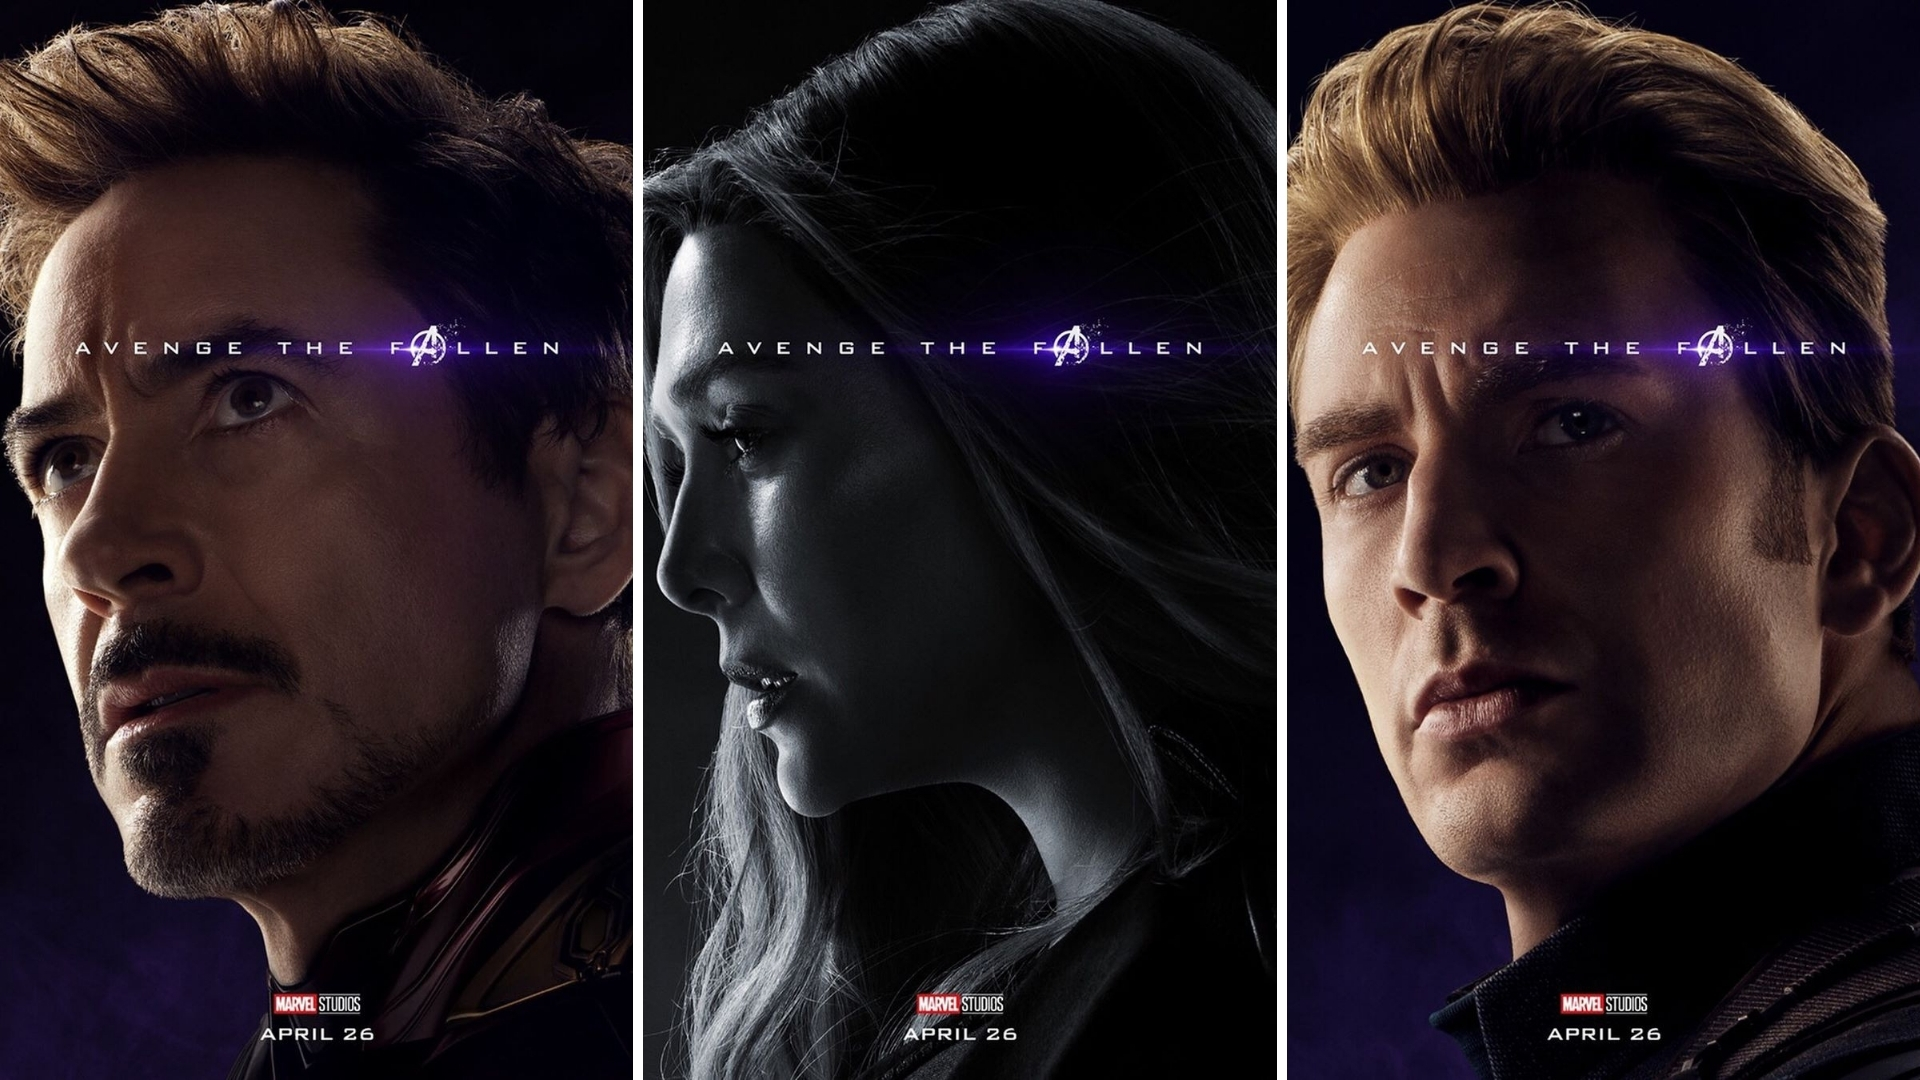 Review: 'Avengers: Endgame' Delivers an Underwhelming Conclusion